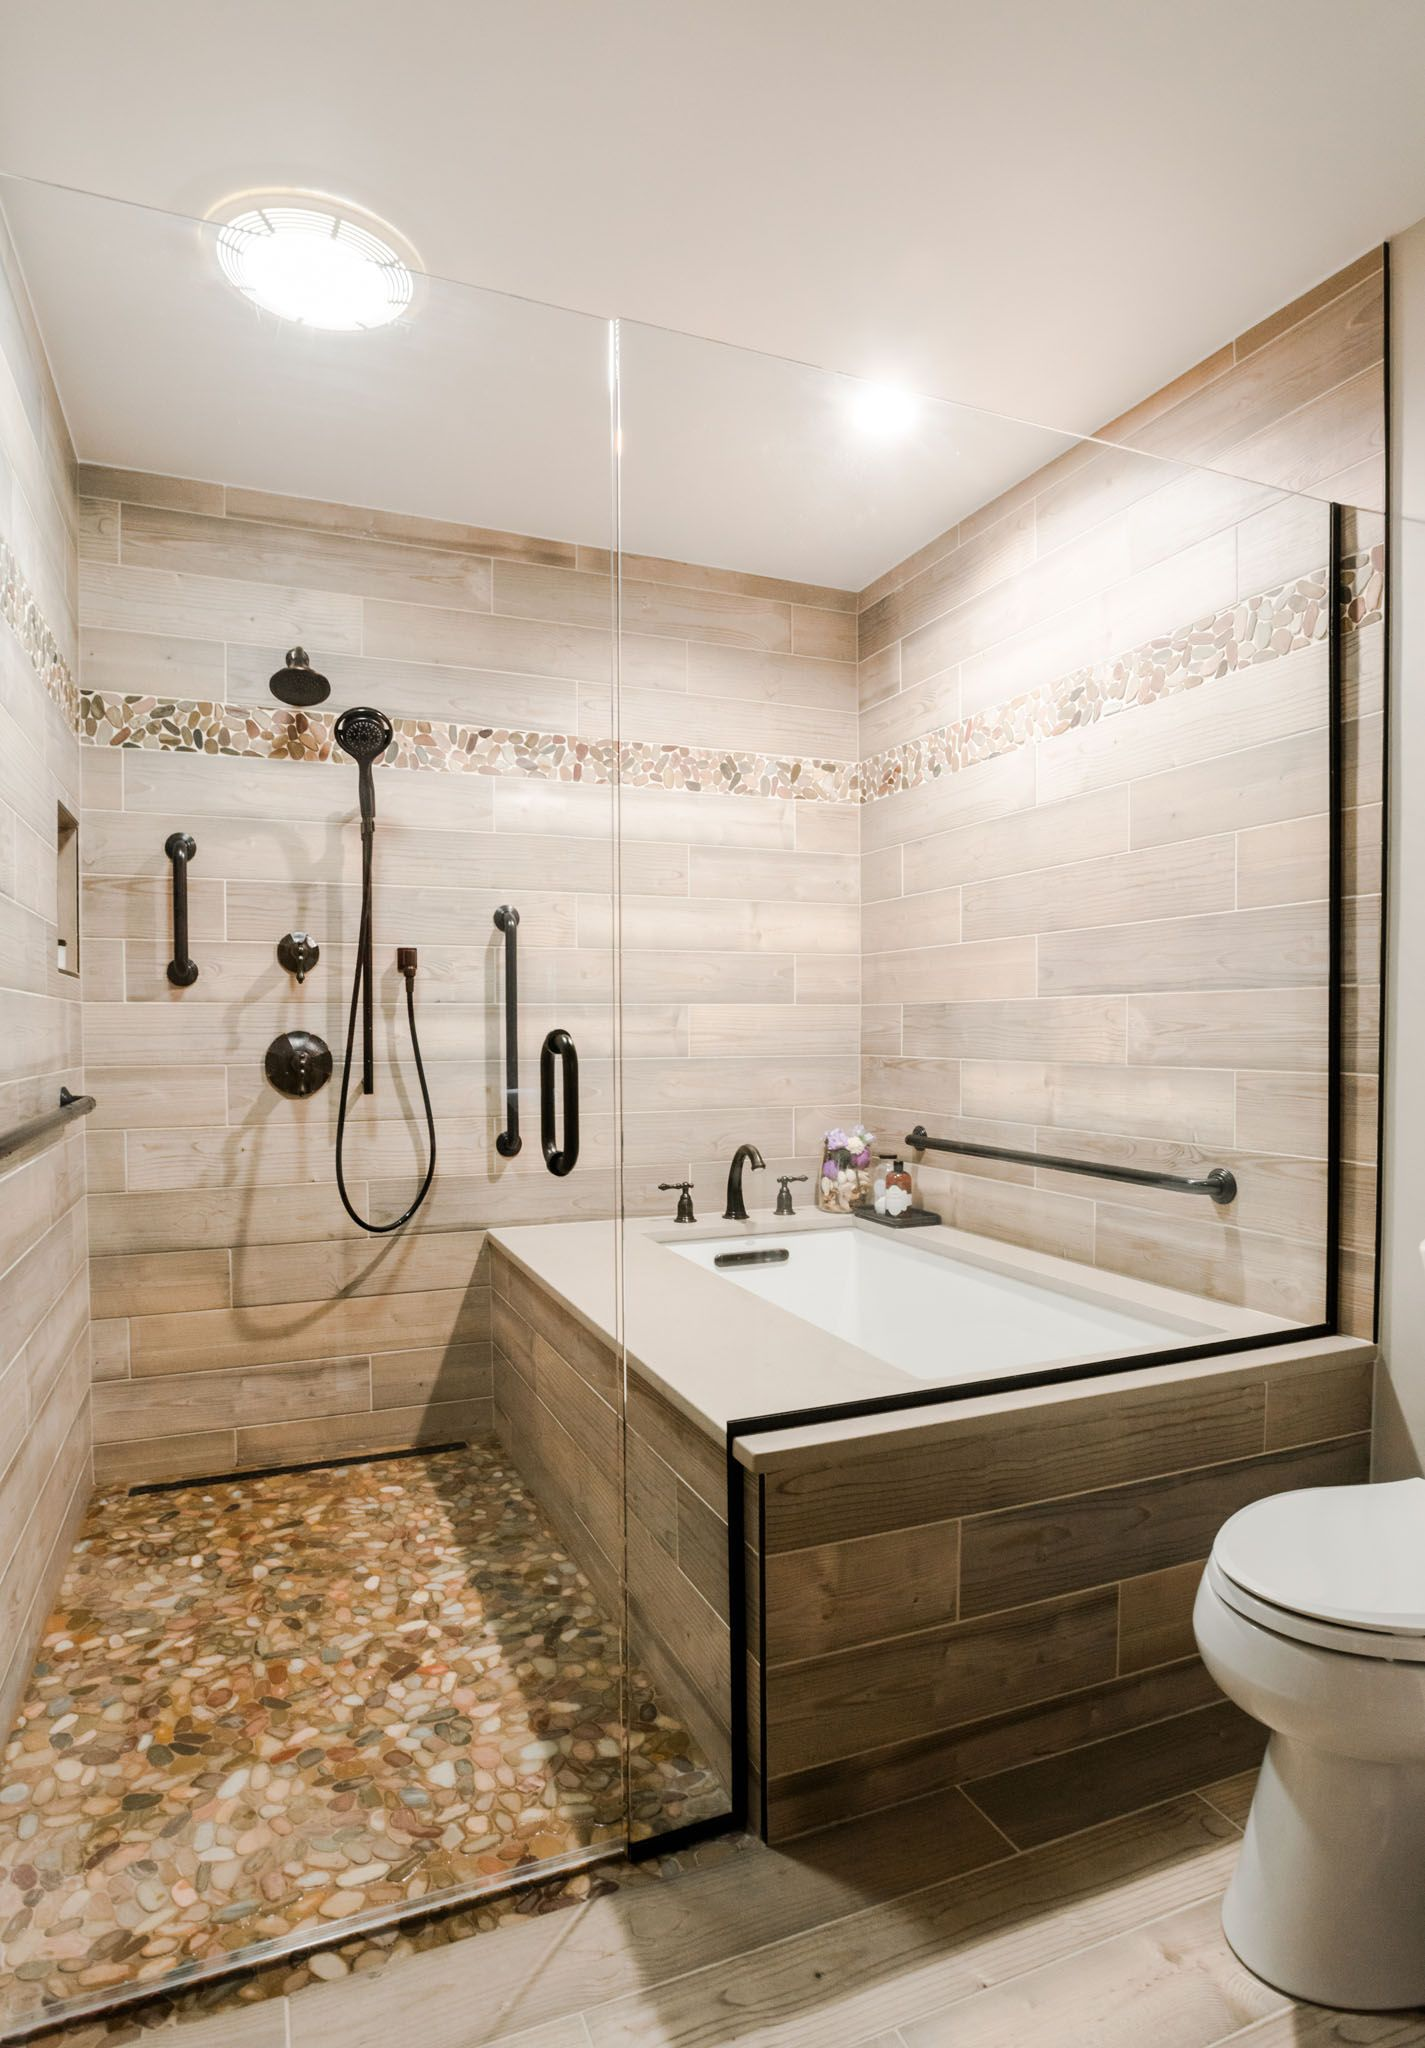 This Master Bath Remodel Features A Beautiful Corner Tub Inside A